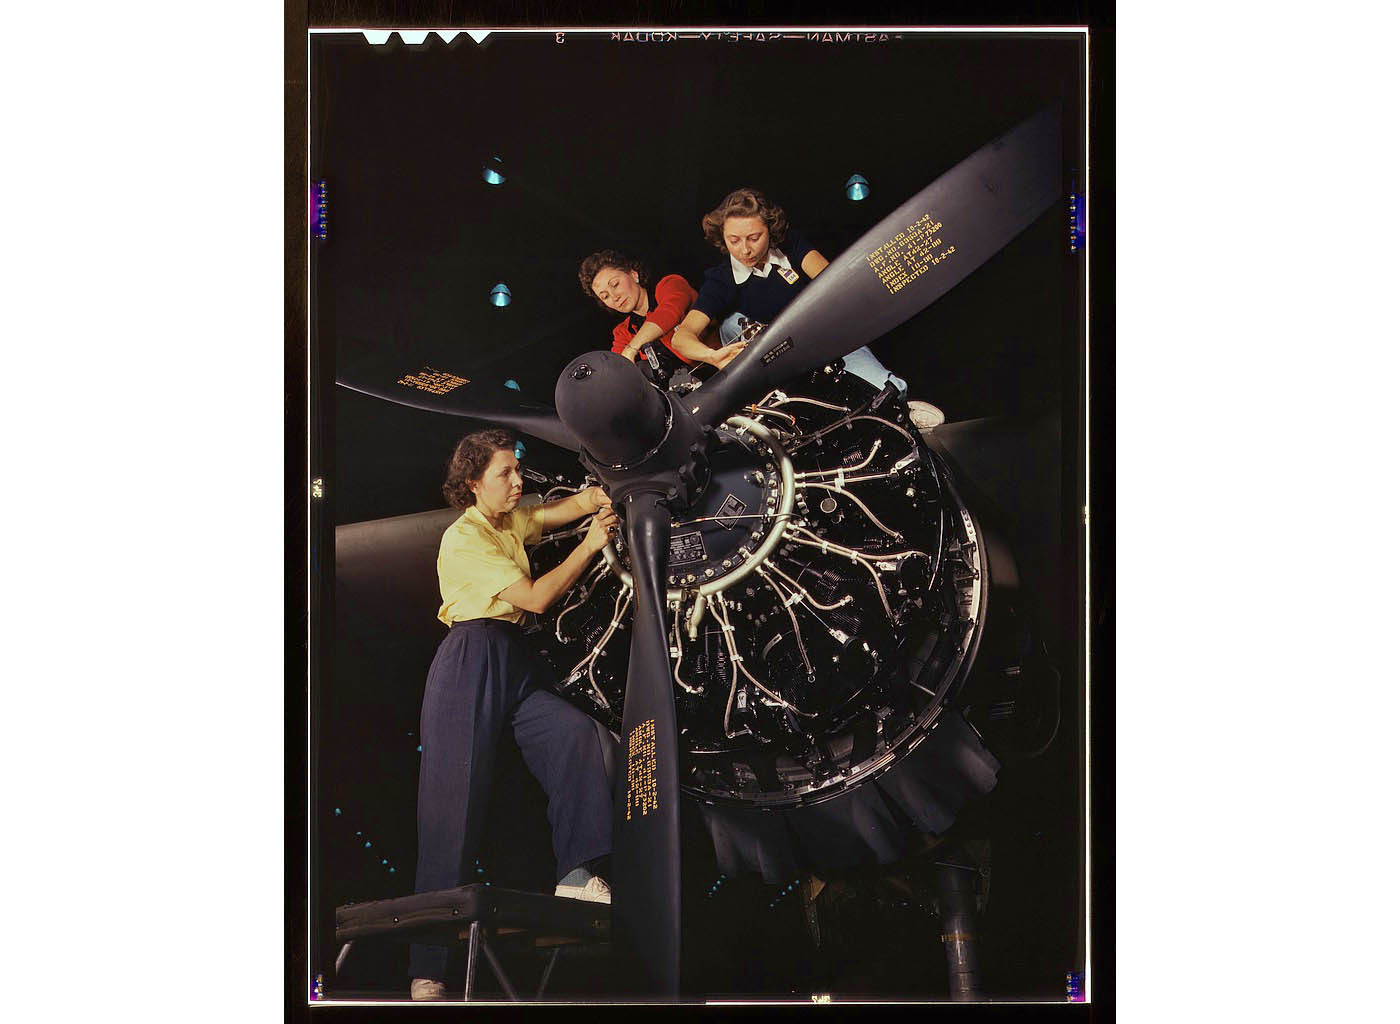 Female workers trained in precise aircraft engine installation duties at Douglas Aircraft Company, Lo